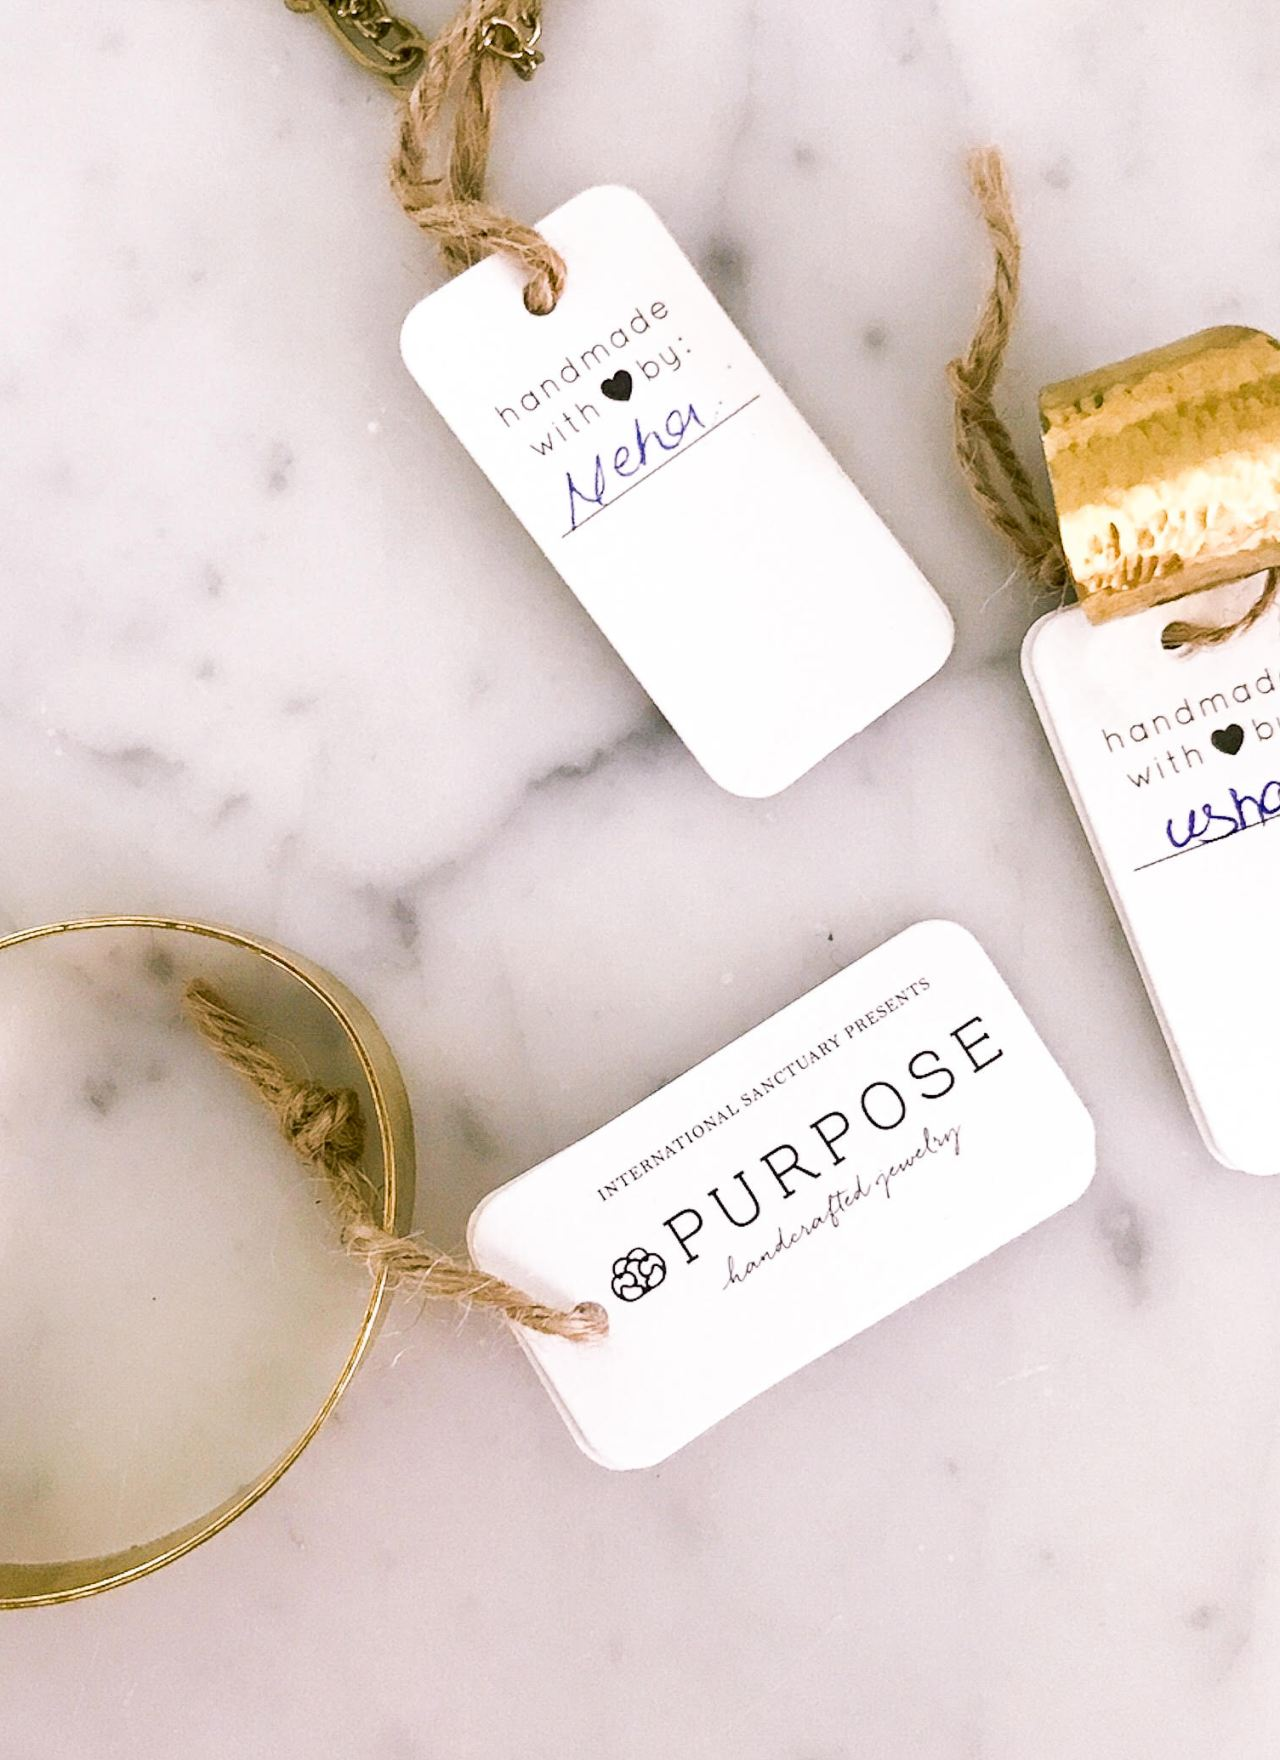 Jewelry with a PURPOSE